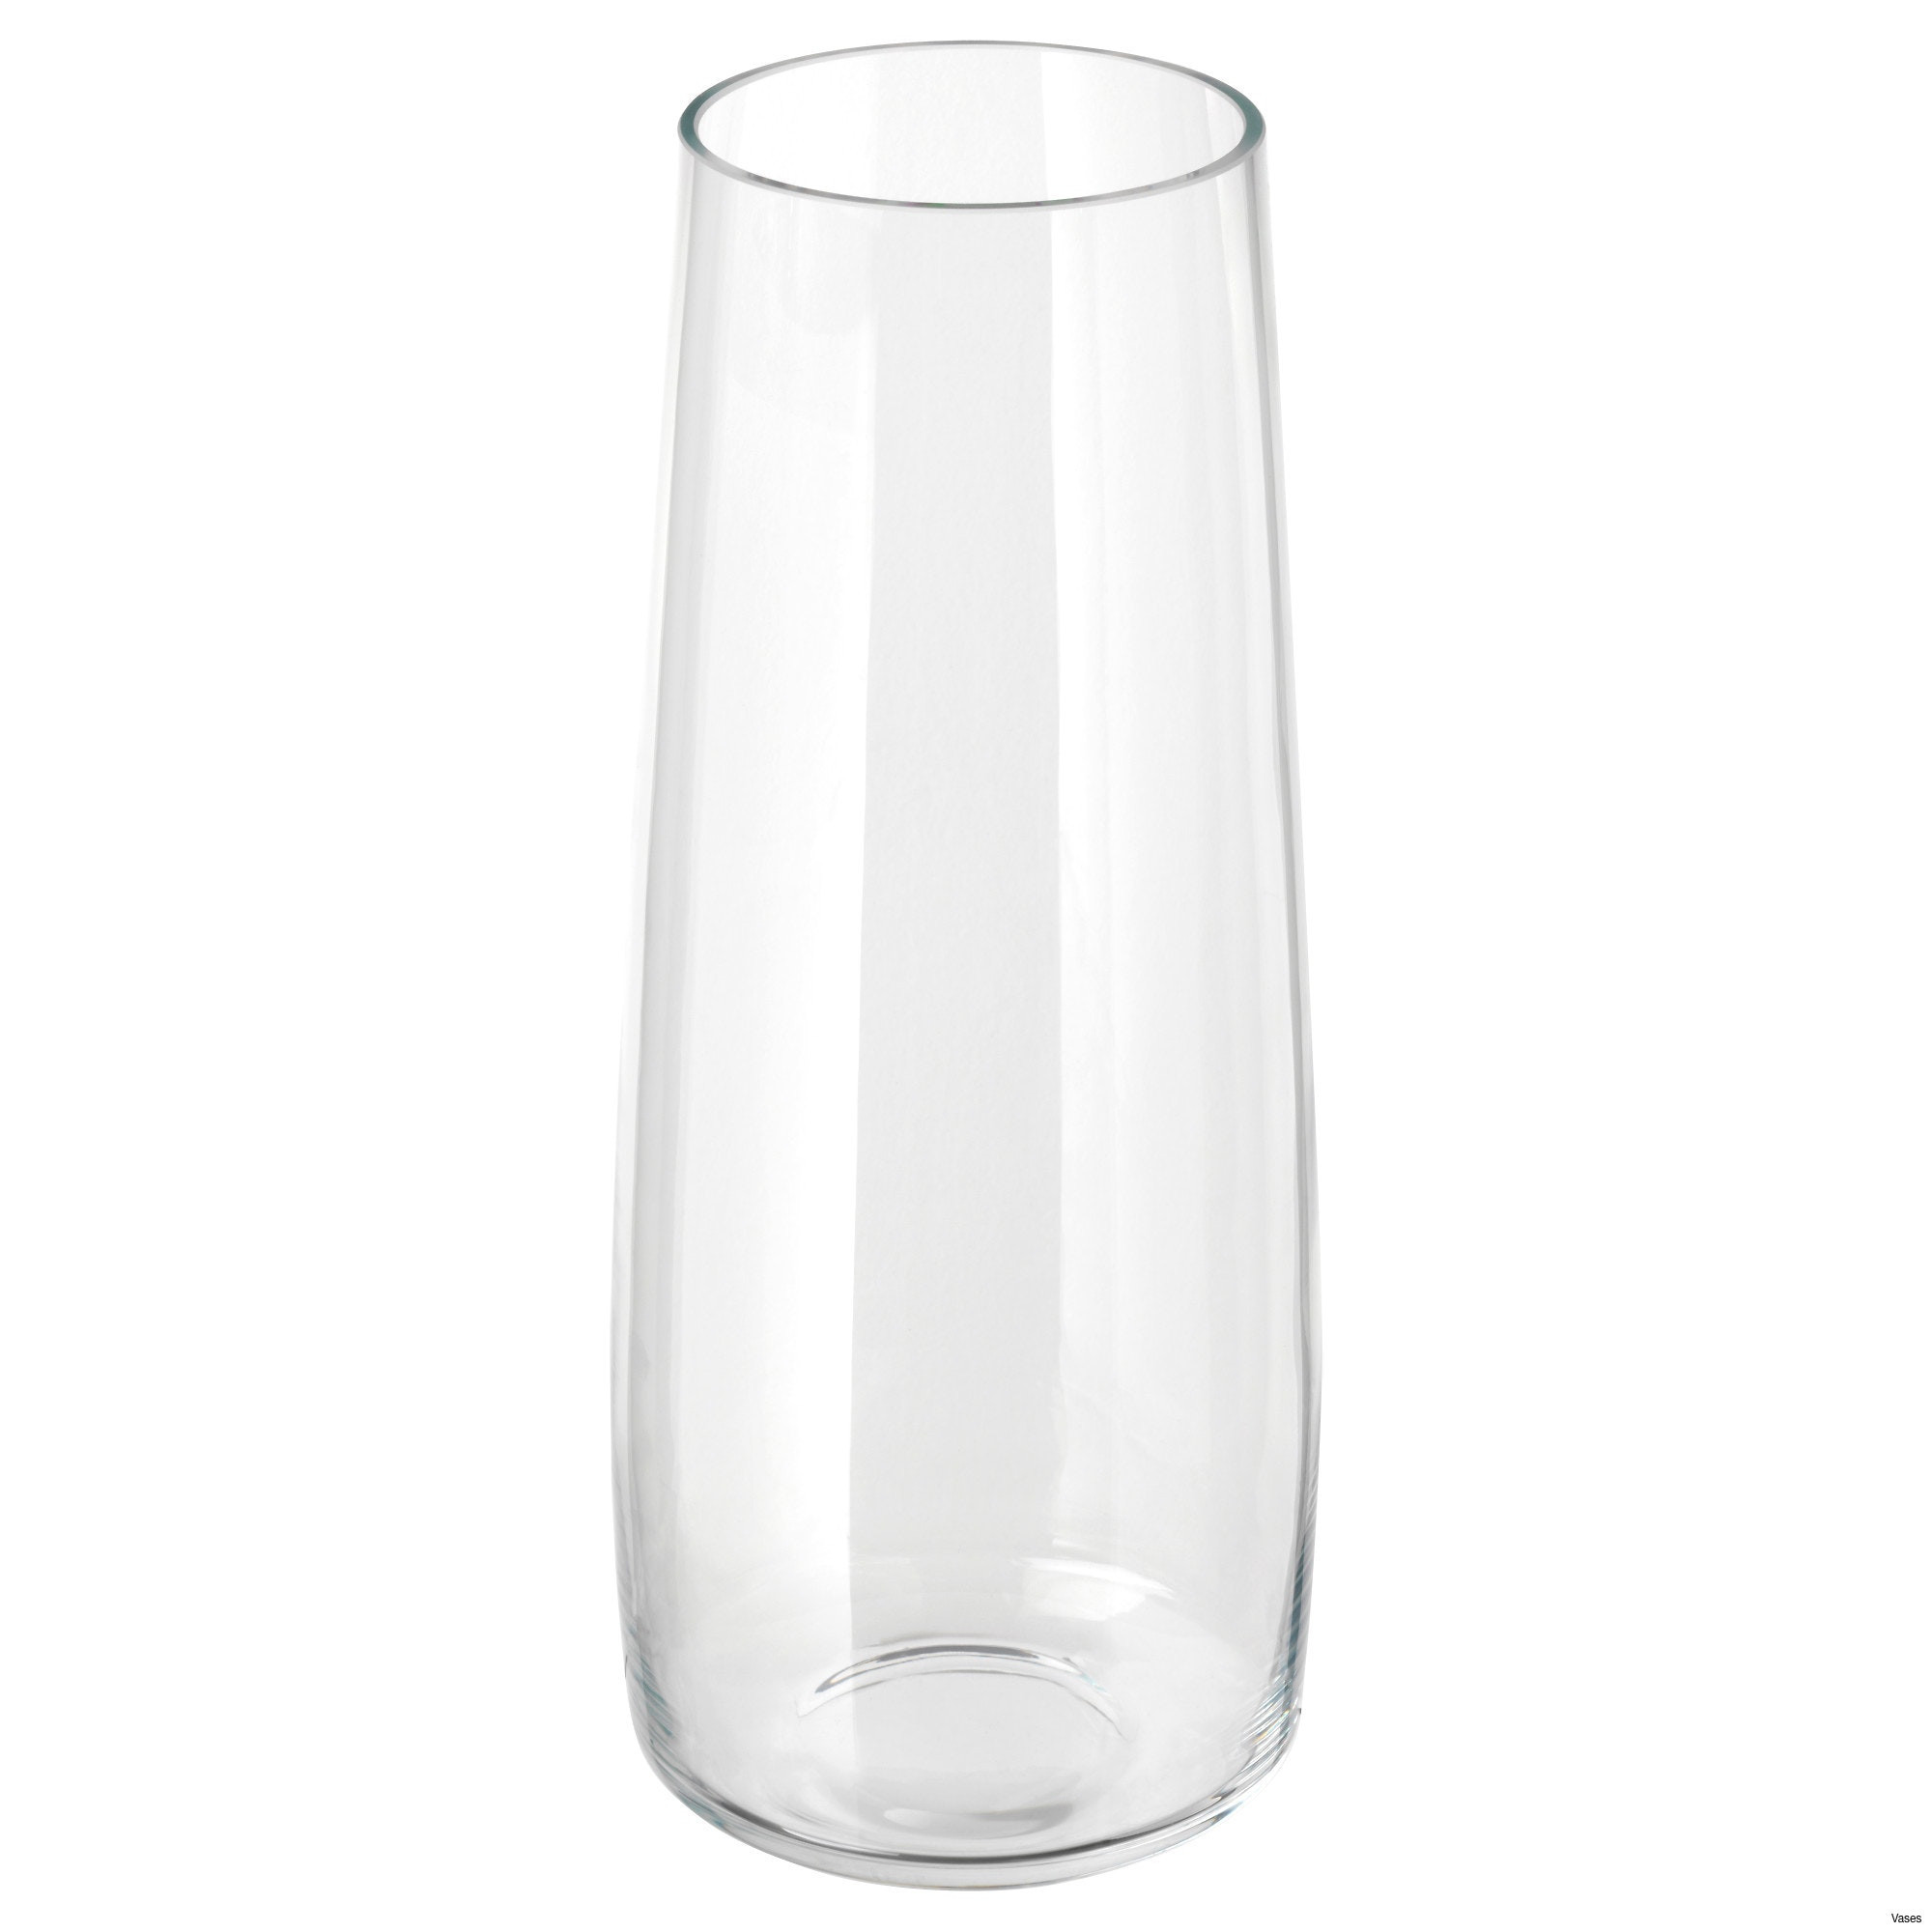 18 cylinder vases wholesale of round glass vases pictures vases bubble ball discount 15 vase round inside round glass vases photograph clear glass planters fresh clear glass vases of round glass vases pictures